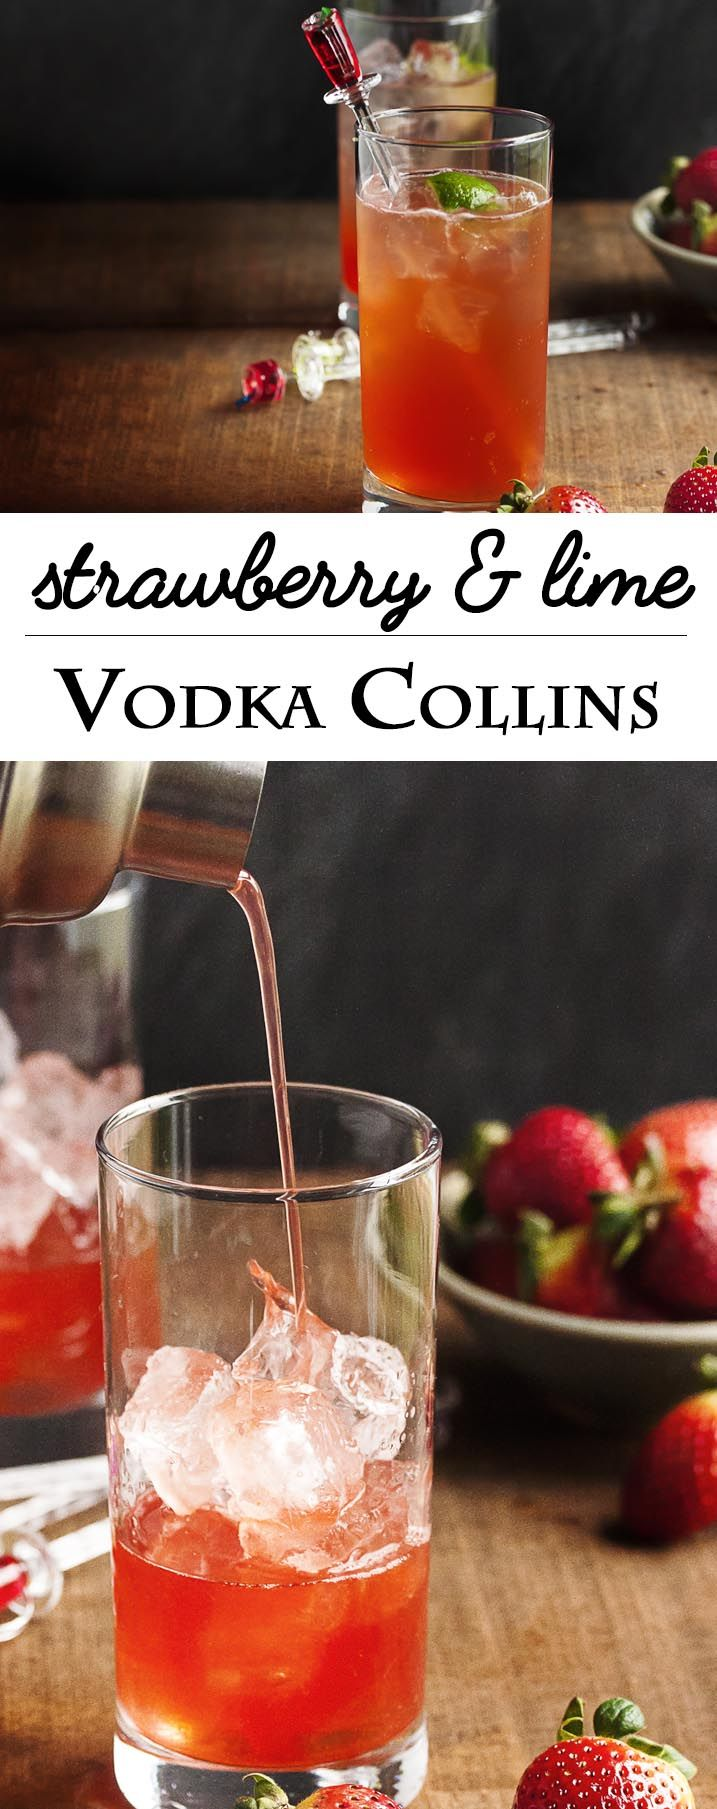 Strawberry and lime vodka collins recipe vodka collins for Drinks with simple syrup and vodka